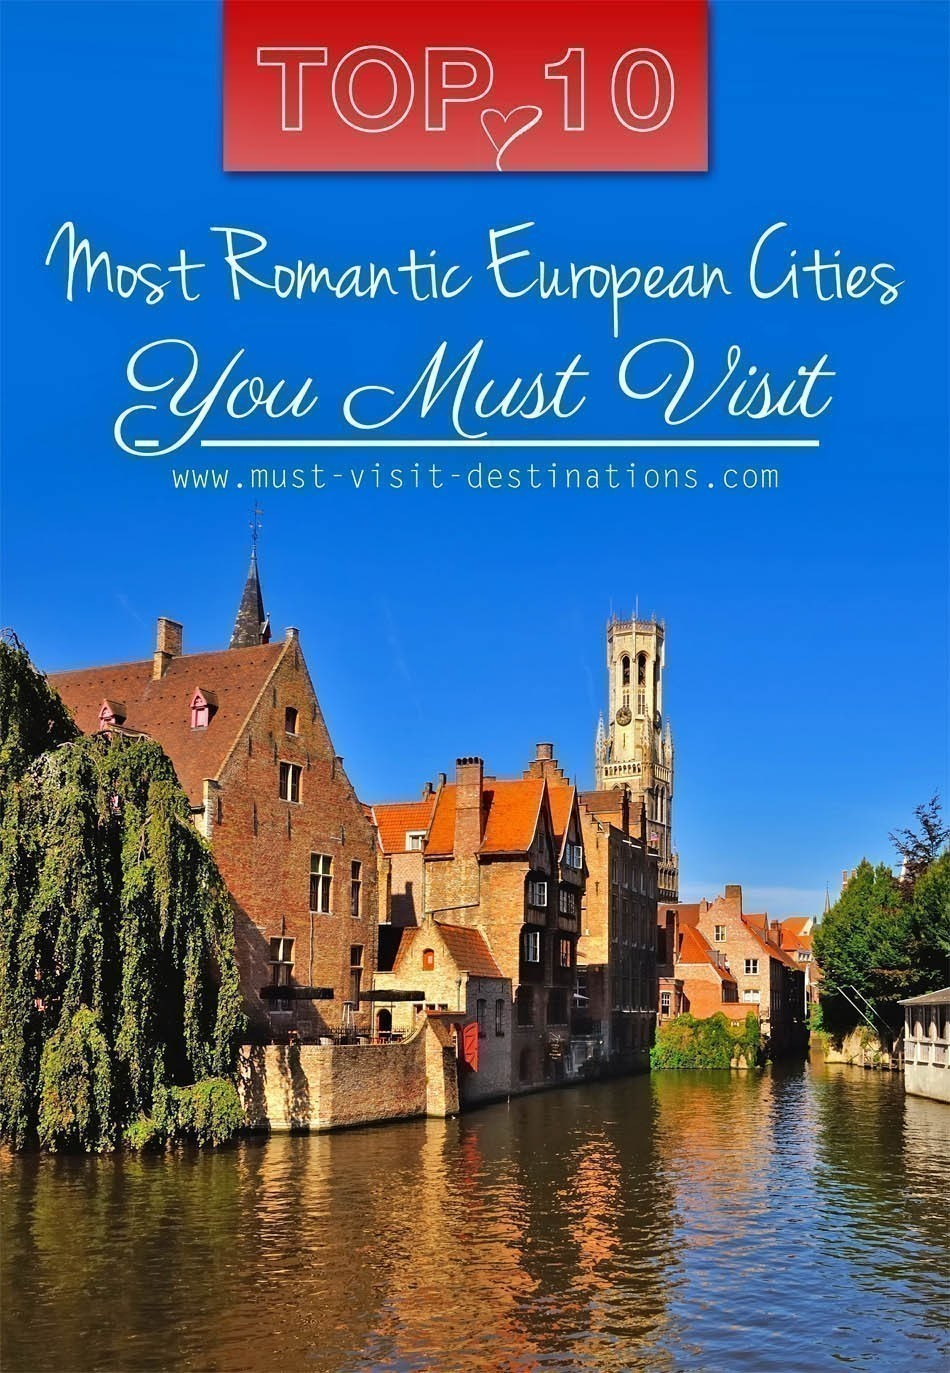 TOP 10 Most Romantic European Cities You Must Visit #romantic #travel